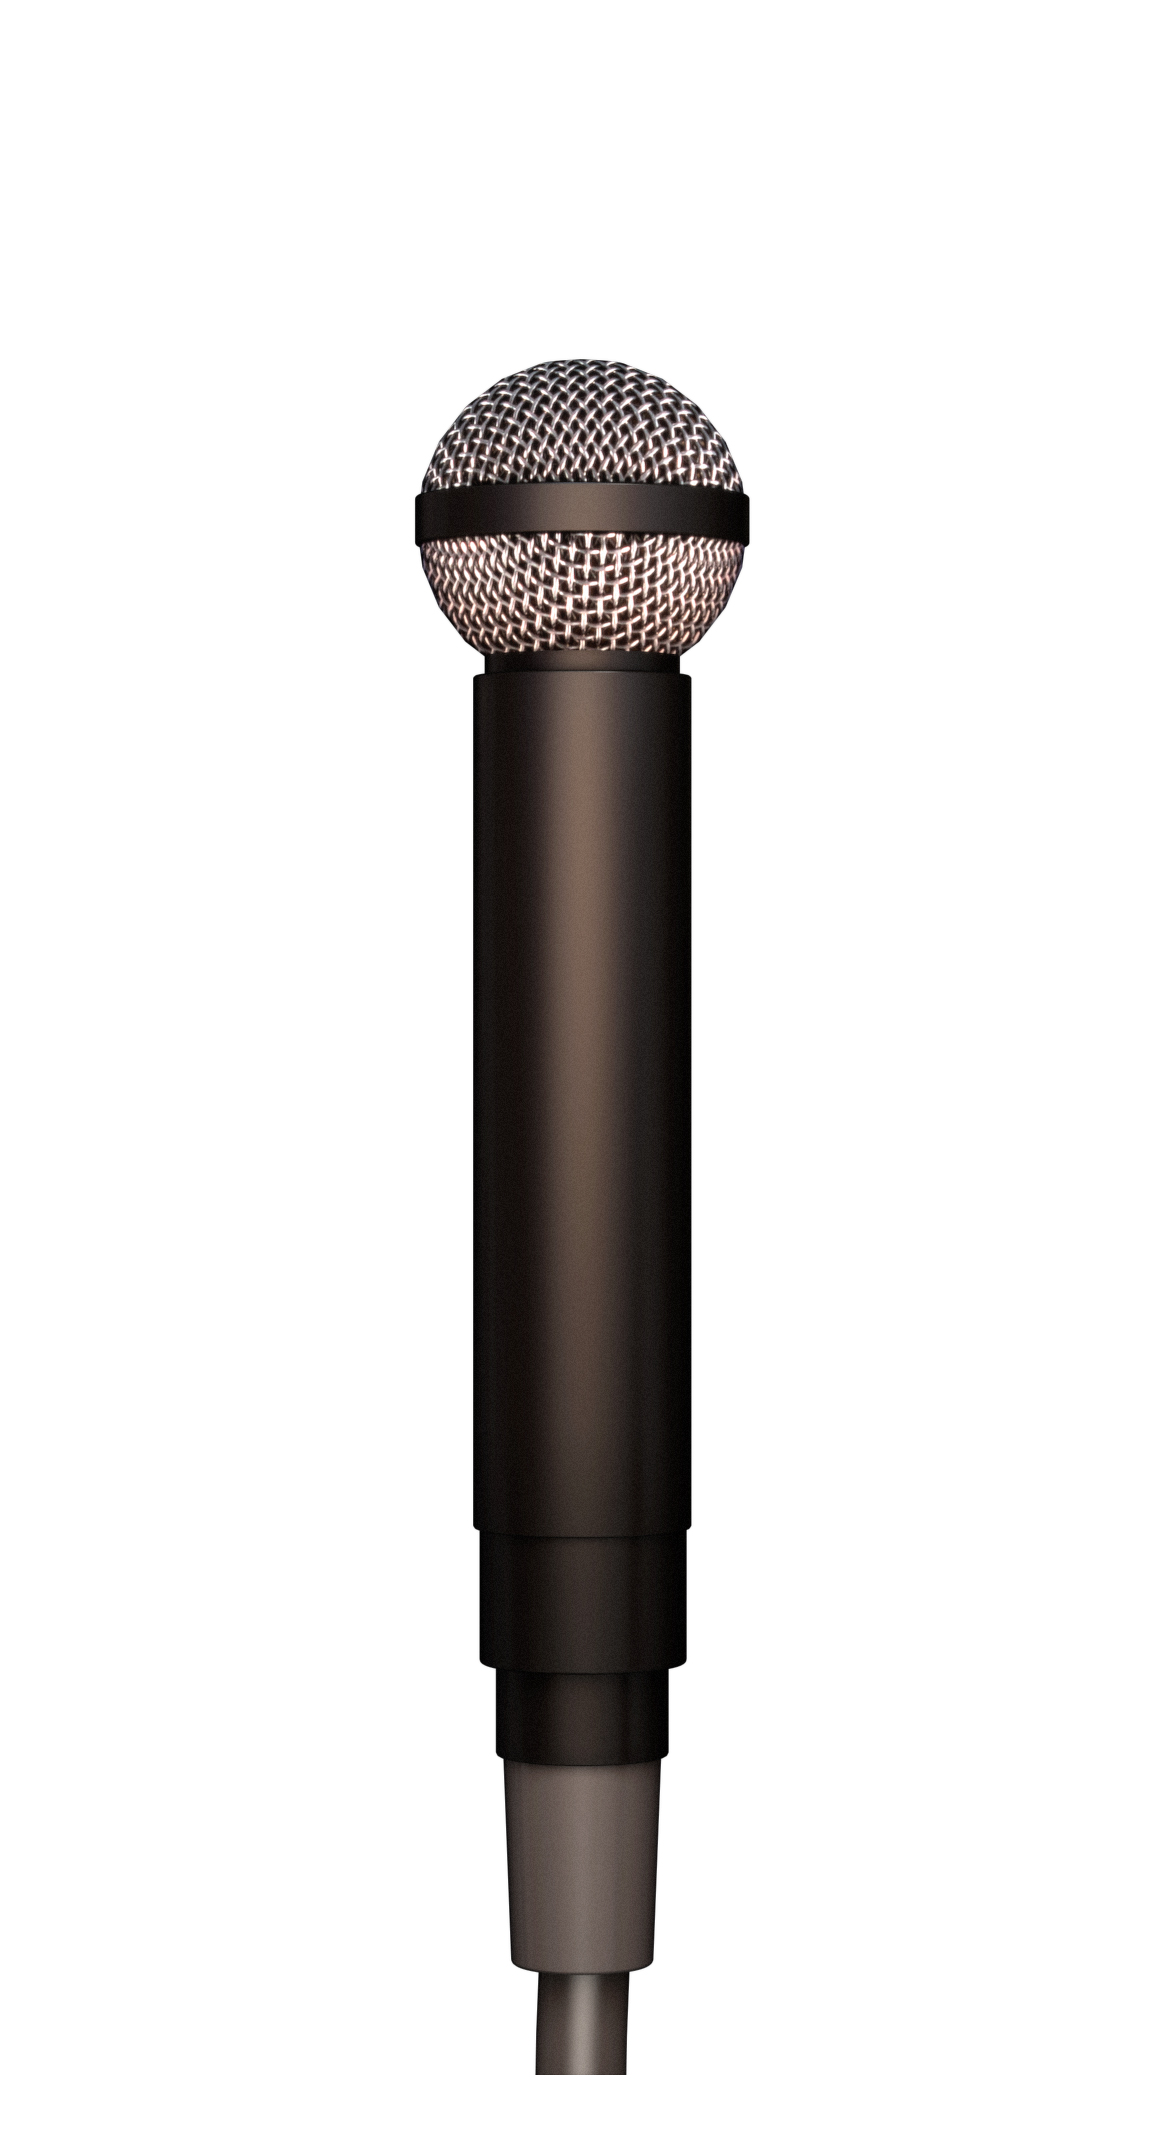 Ik Multimedia Mic Room Dynamic Amplifier To Use Speaker As Microphone Electronic Ribbon 160 Based On Beyerdynamic M160